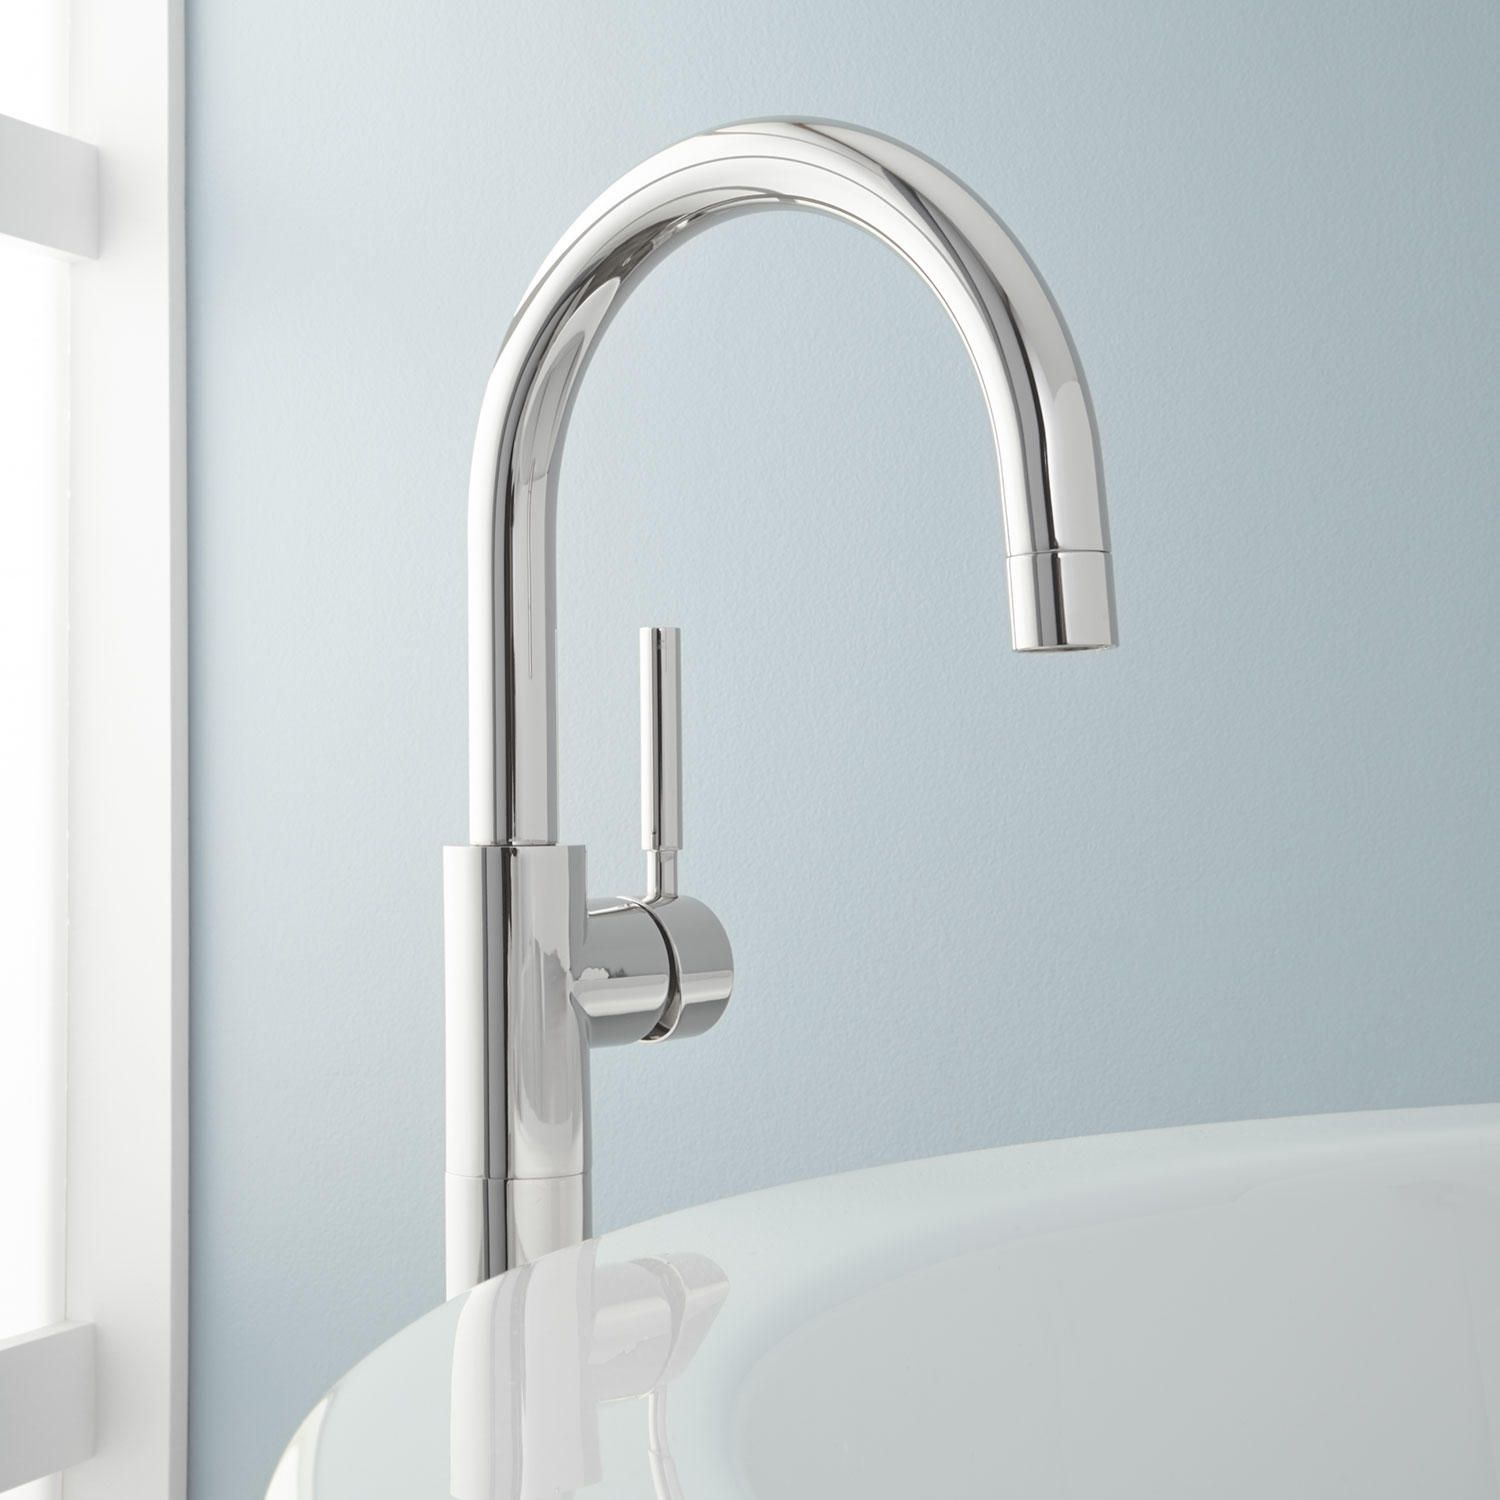 Simoni Freestanding Tub Faucet | Freestanding tub, Faucet and Tubs